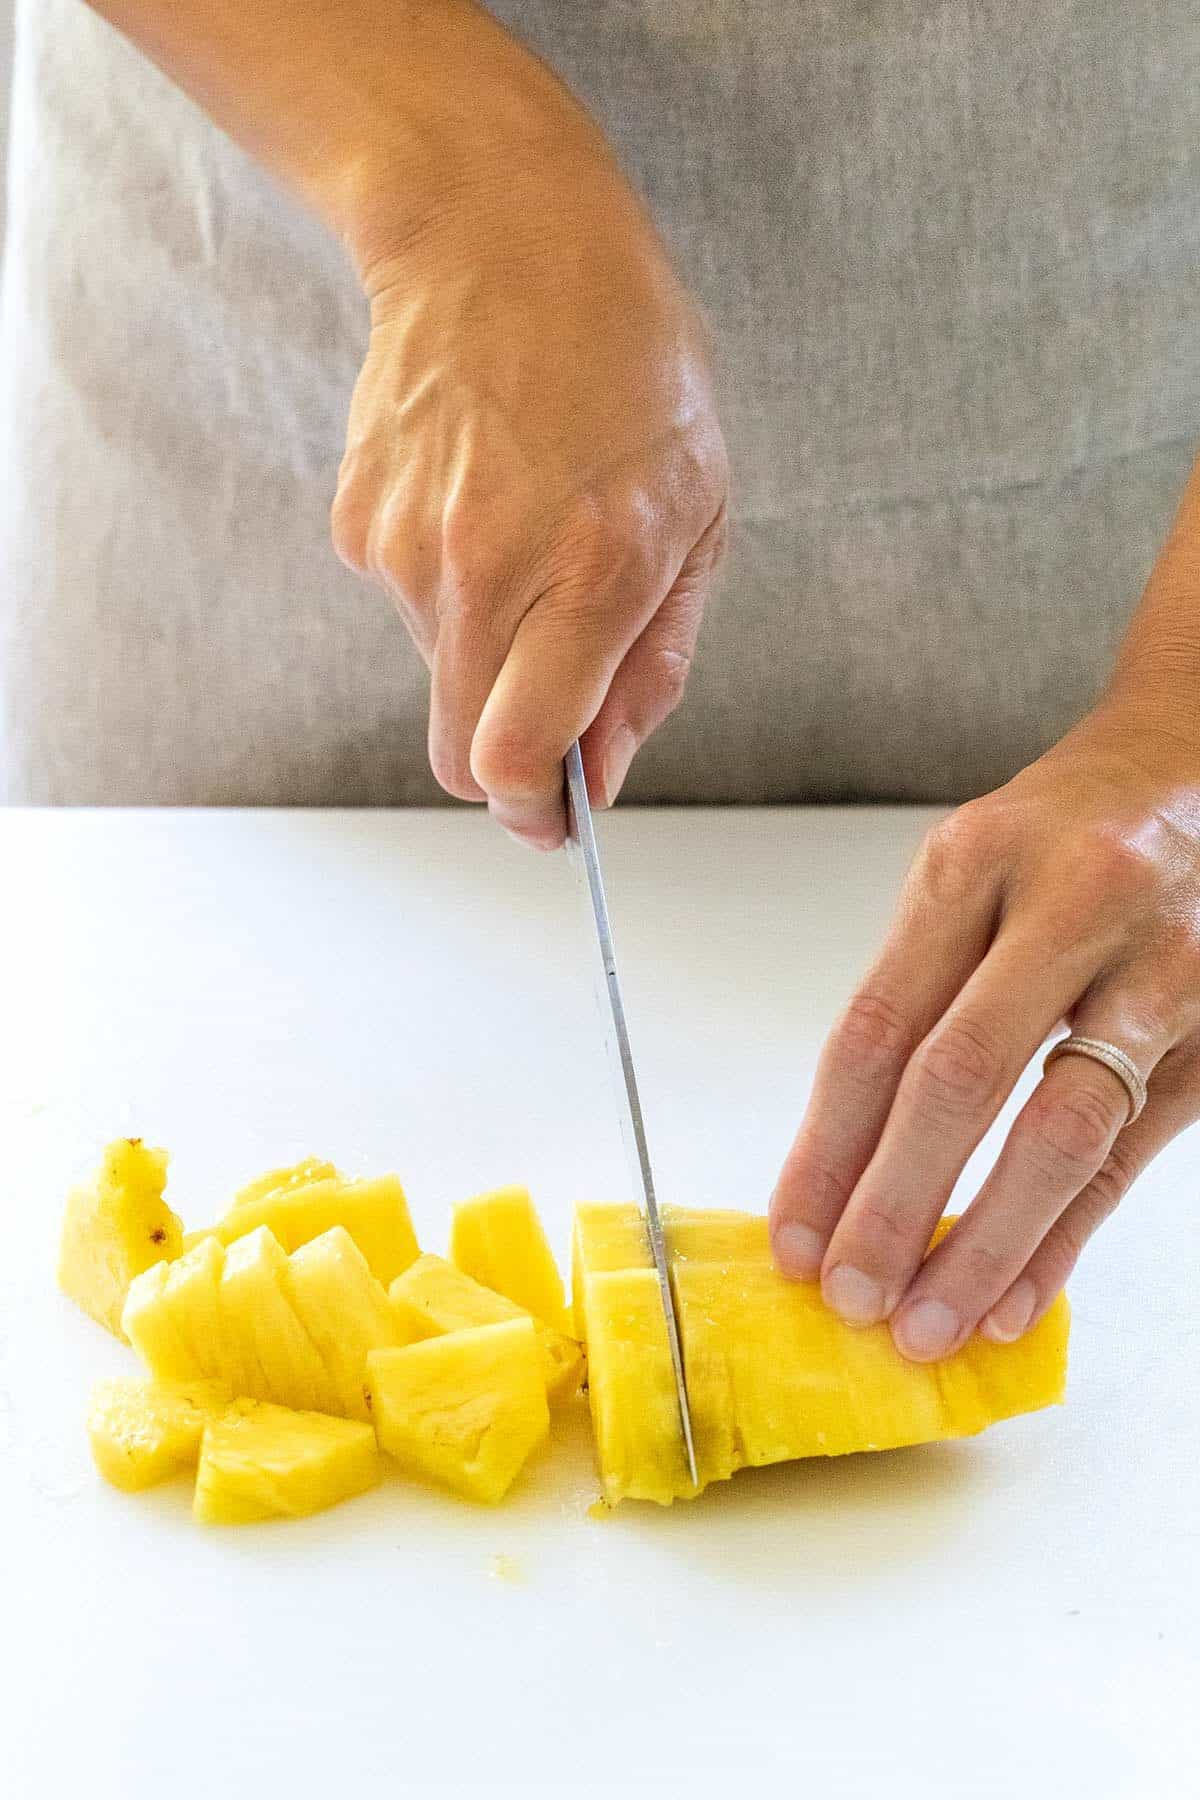 cutting pineapple into smaller slices